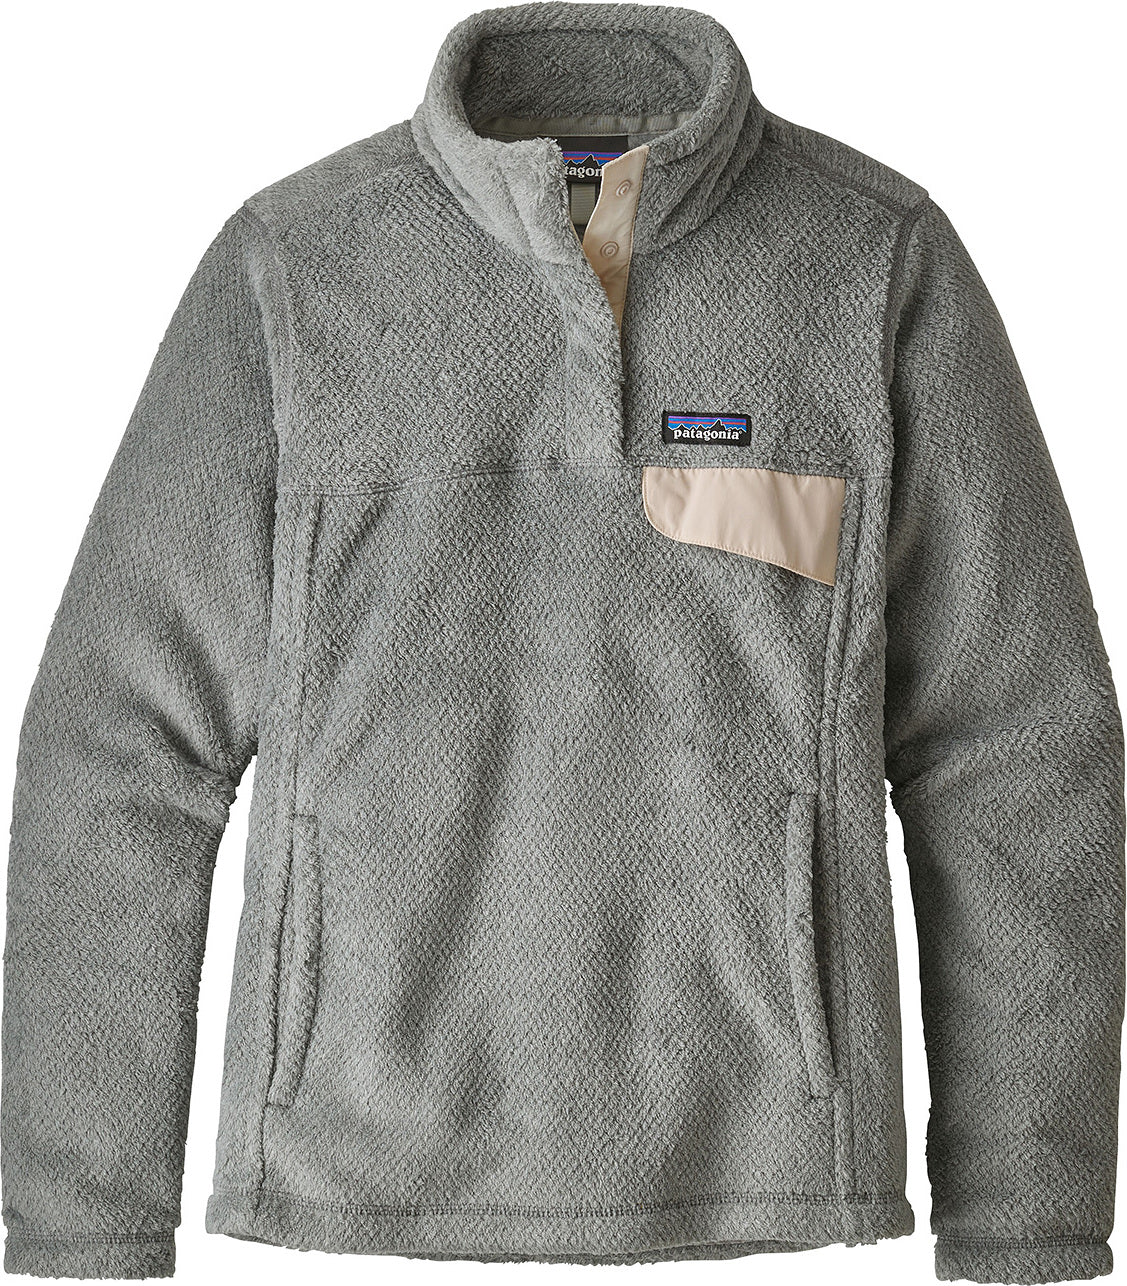 d056150c1 ... Patagonia Re-Tool Snap-T Pullover - Women's Tailored Grey - Nickel X-  ...